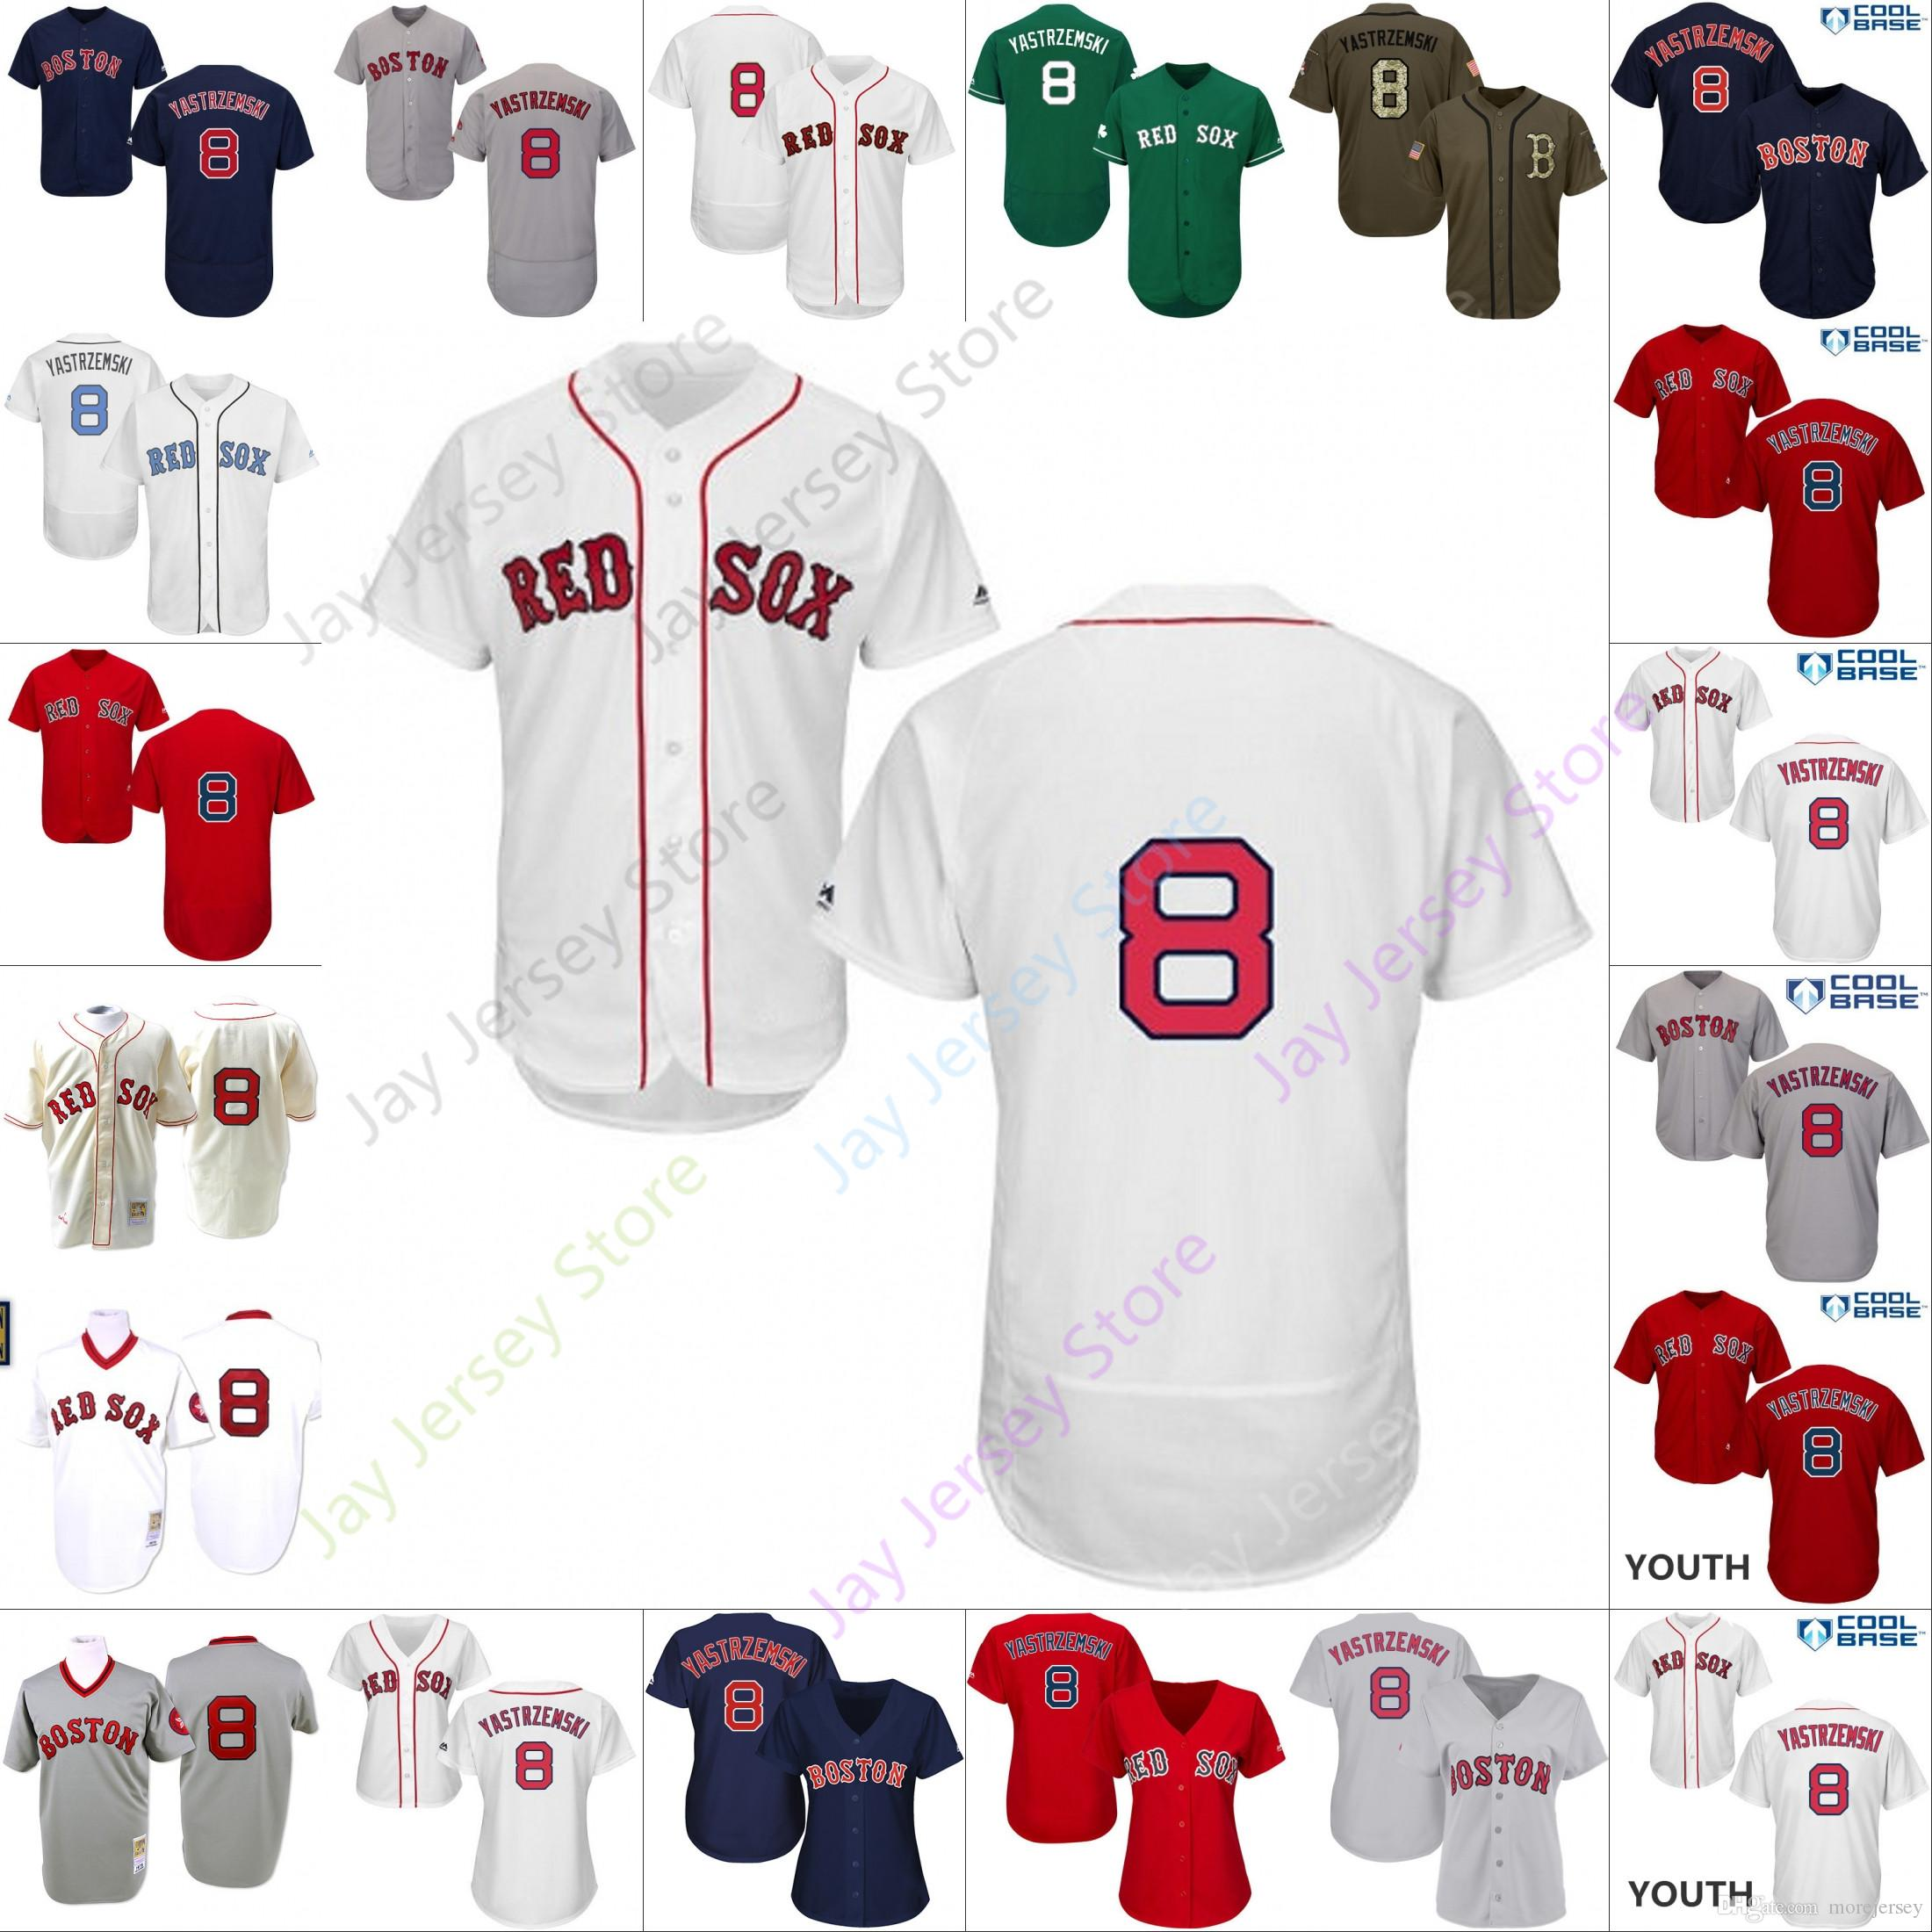 huge discount f6bfa 9b76a 2019 Boston 8 Carl Yastrzemski Jersey Red Sox Jerseys Men Women Youth Cool  Base Flexbase Home Away White Black Red Grey Pullover Button